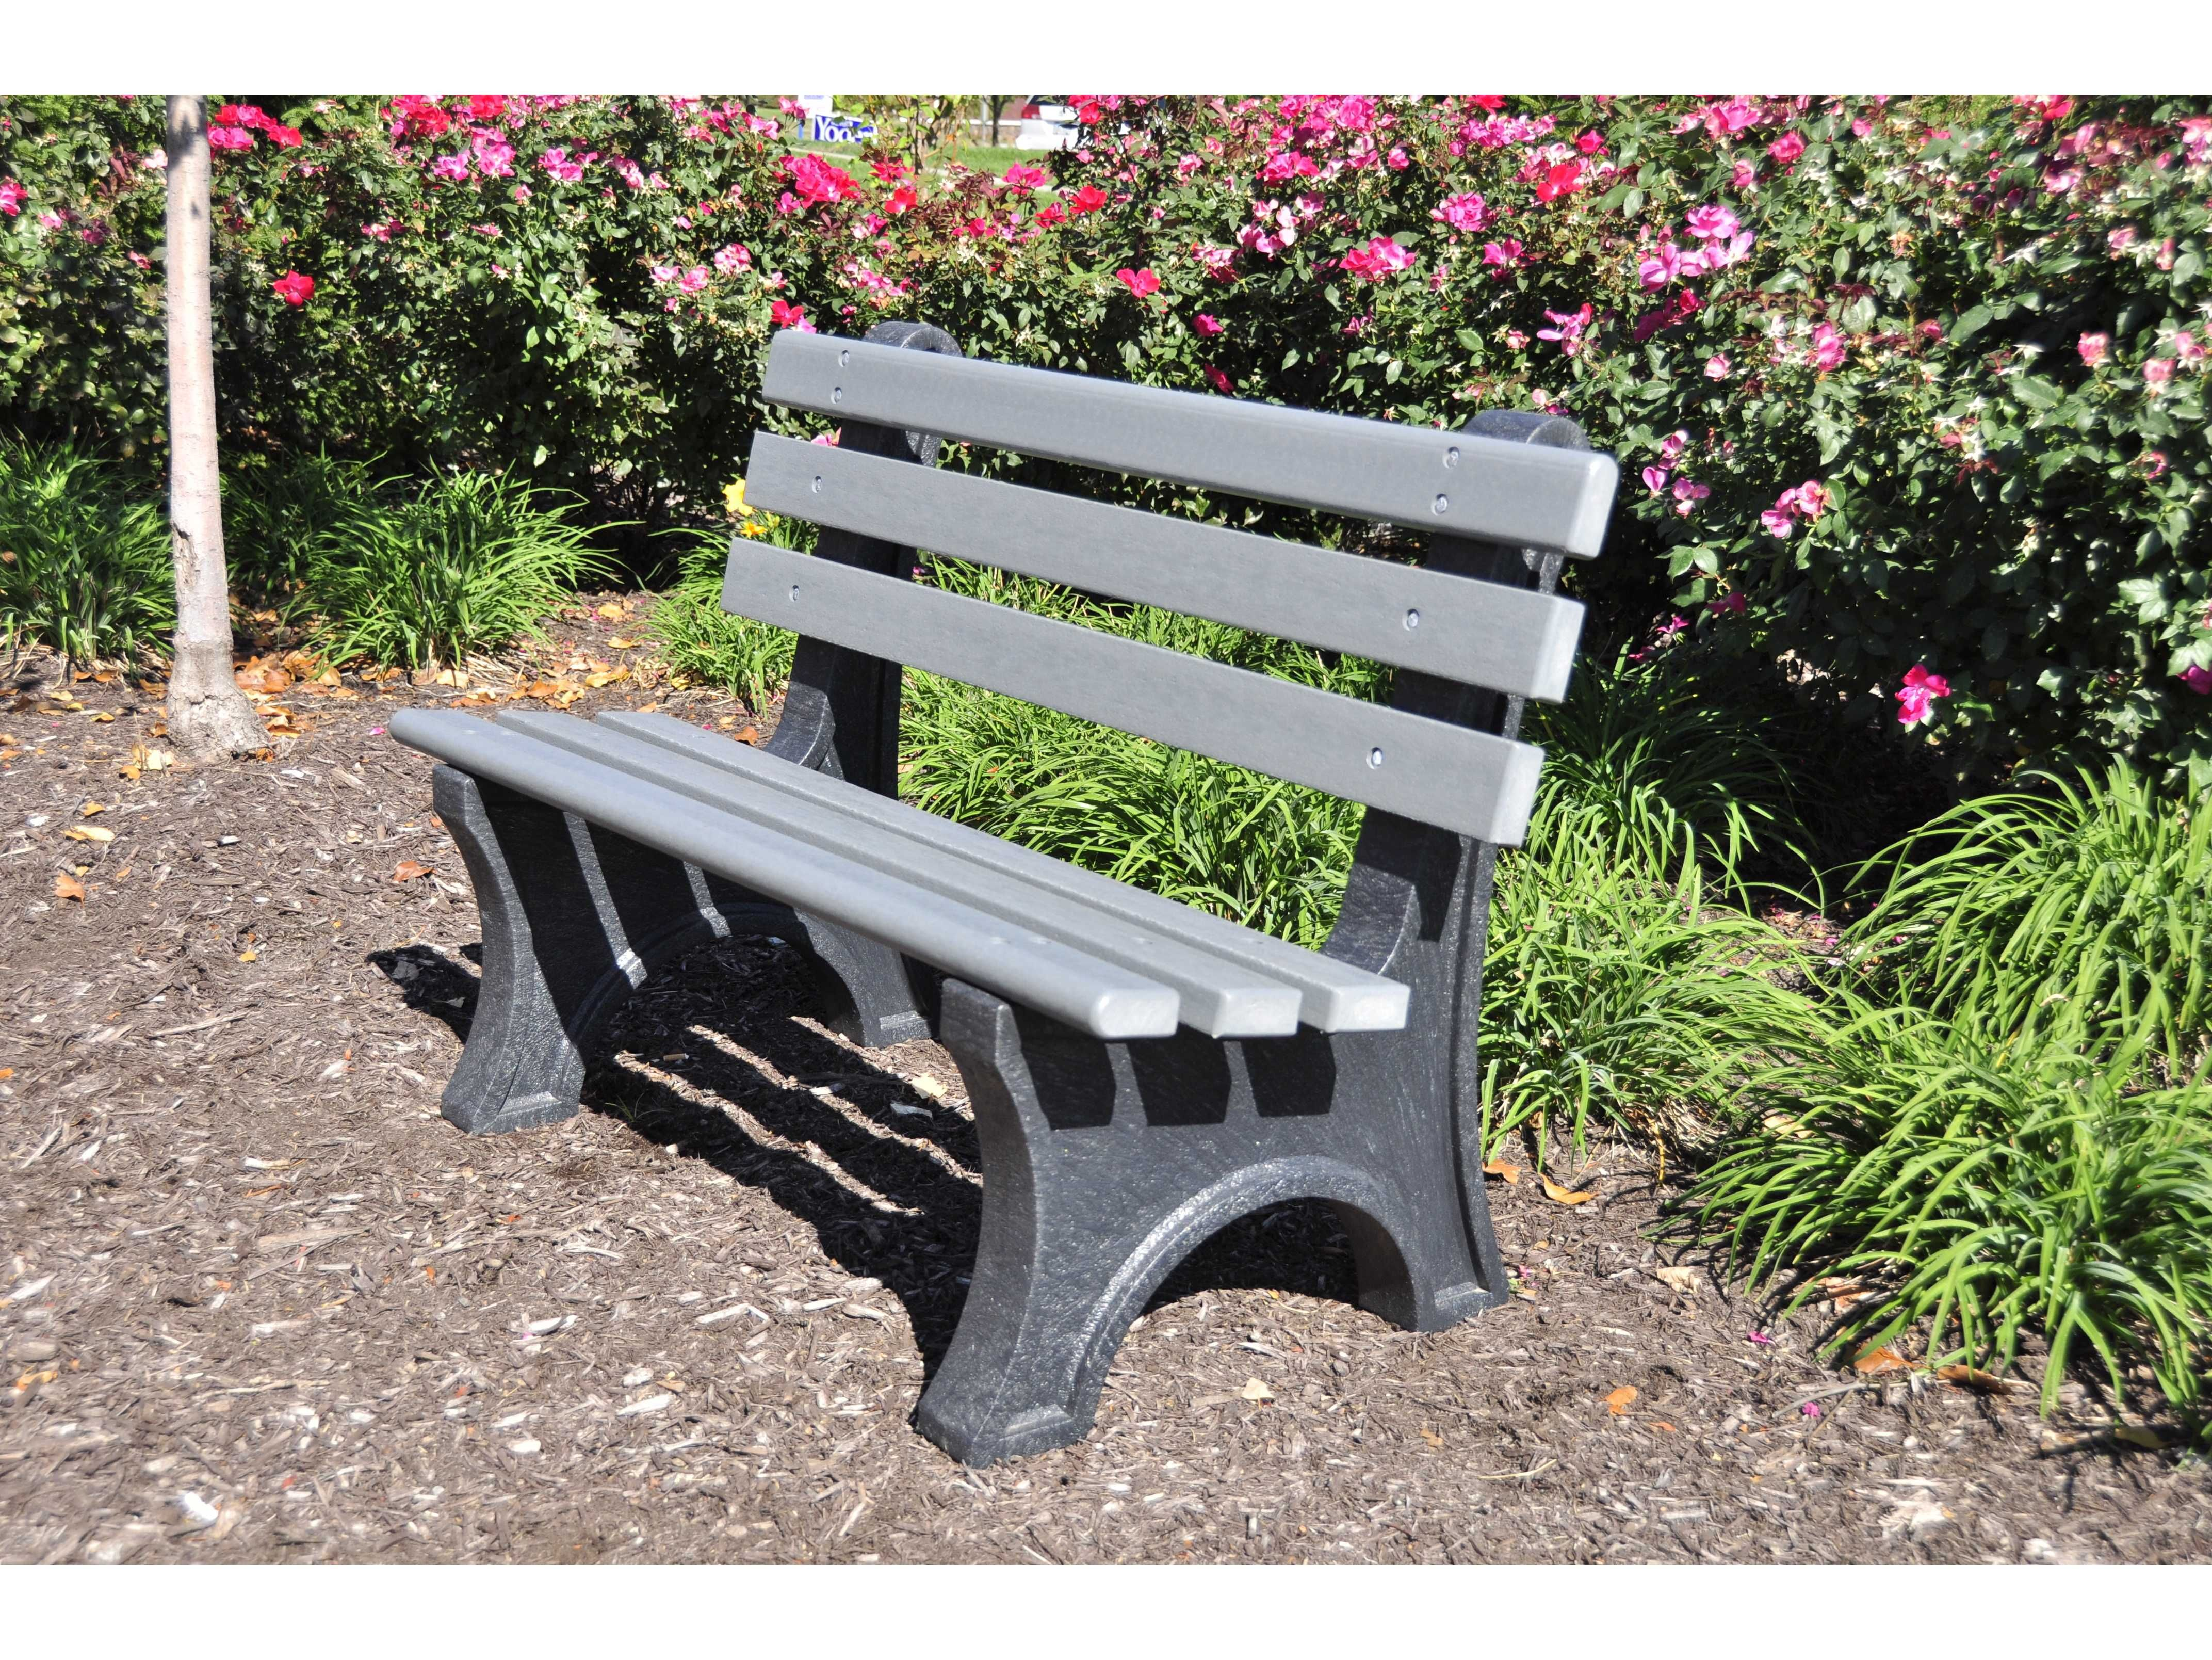 Frog Furnishings Central Park Recycled Plastic Bench Jhpbcpe Park Bench Recycled Plastic Outdoor Bench